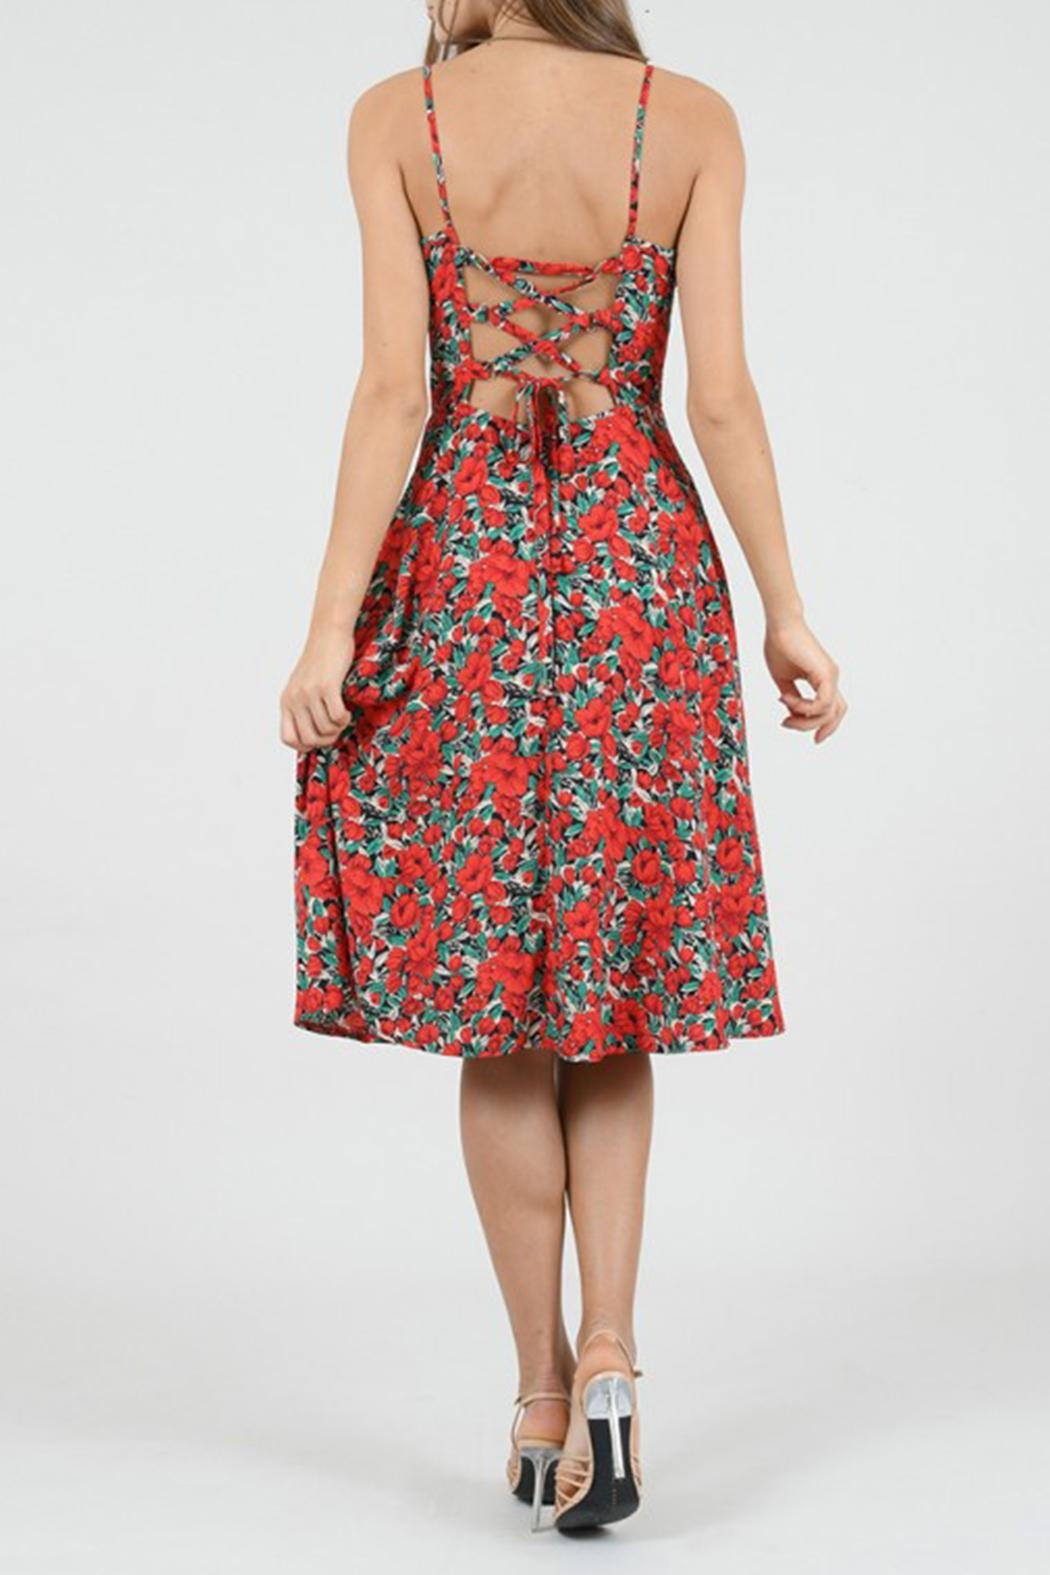 Molly Bracken Floral Dress - Side Cropped Image